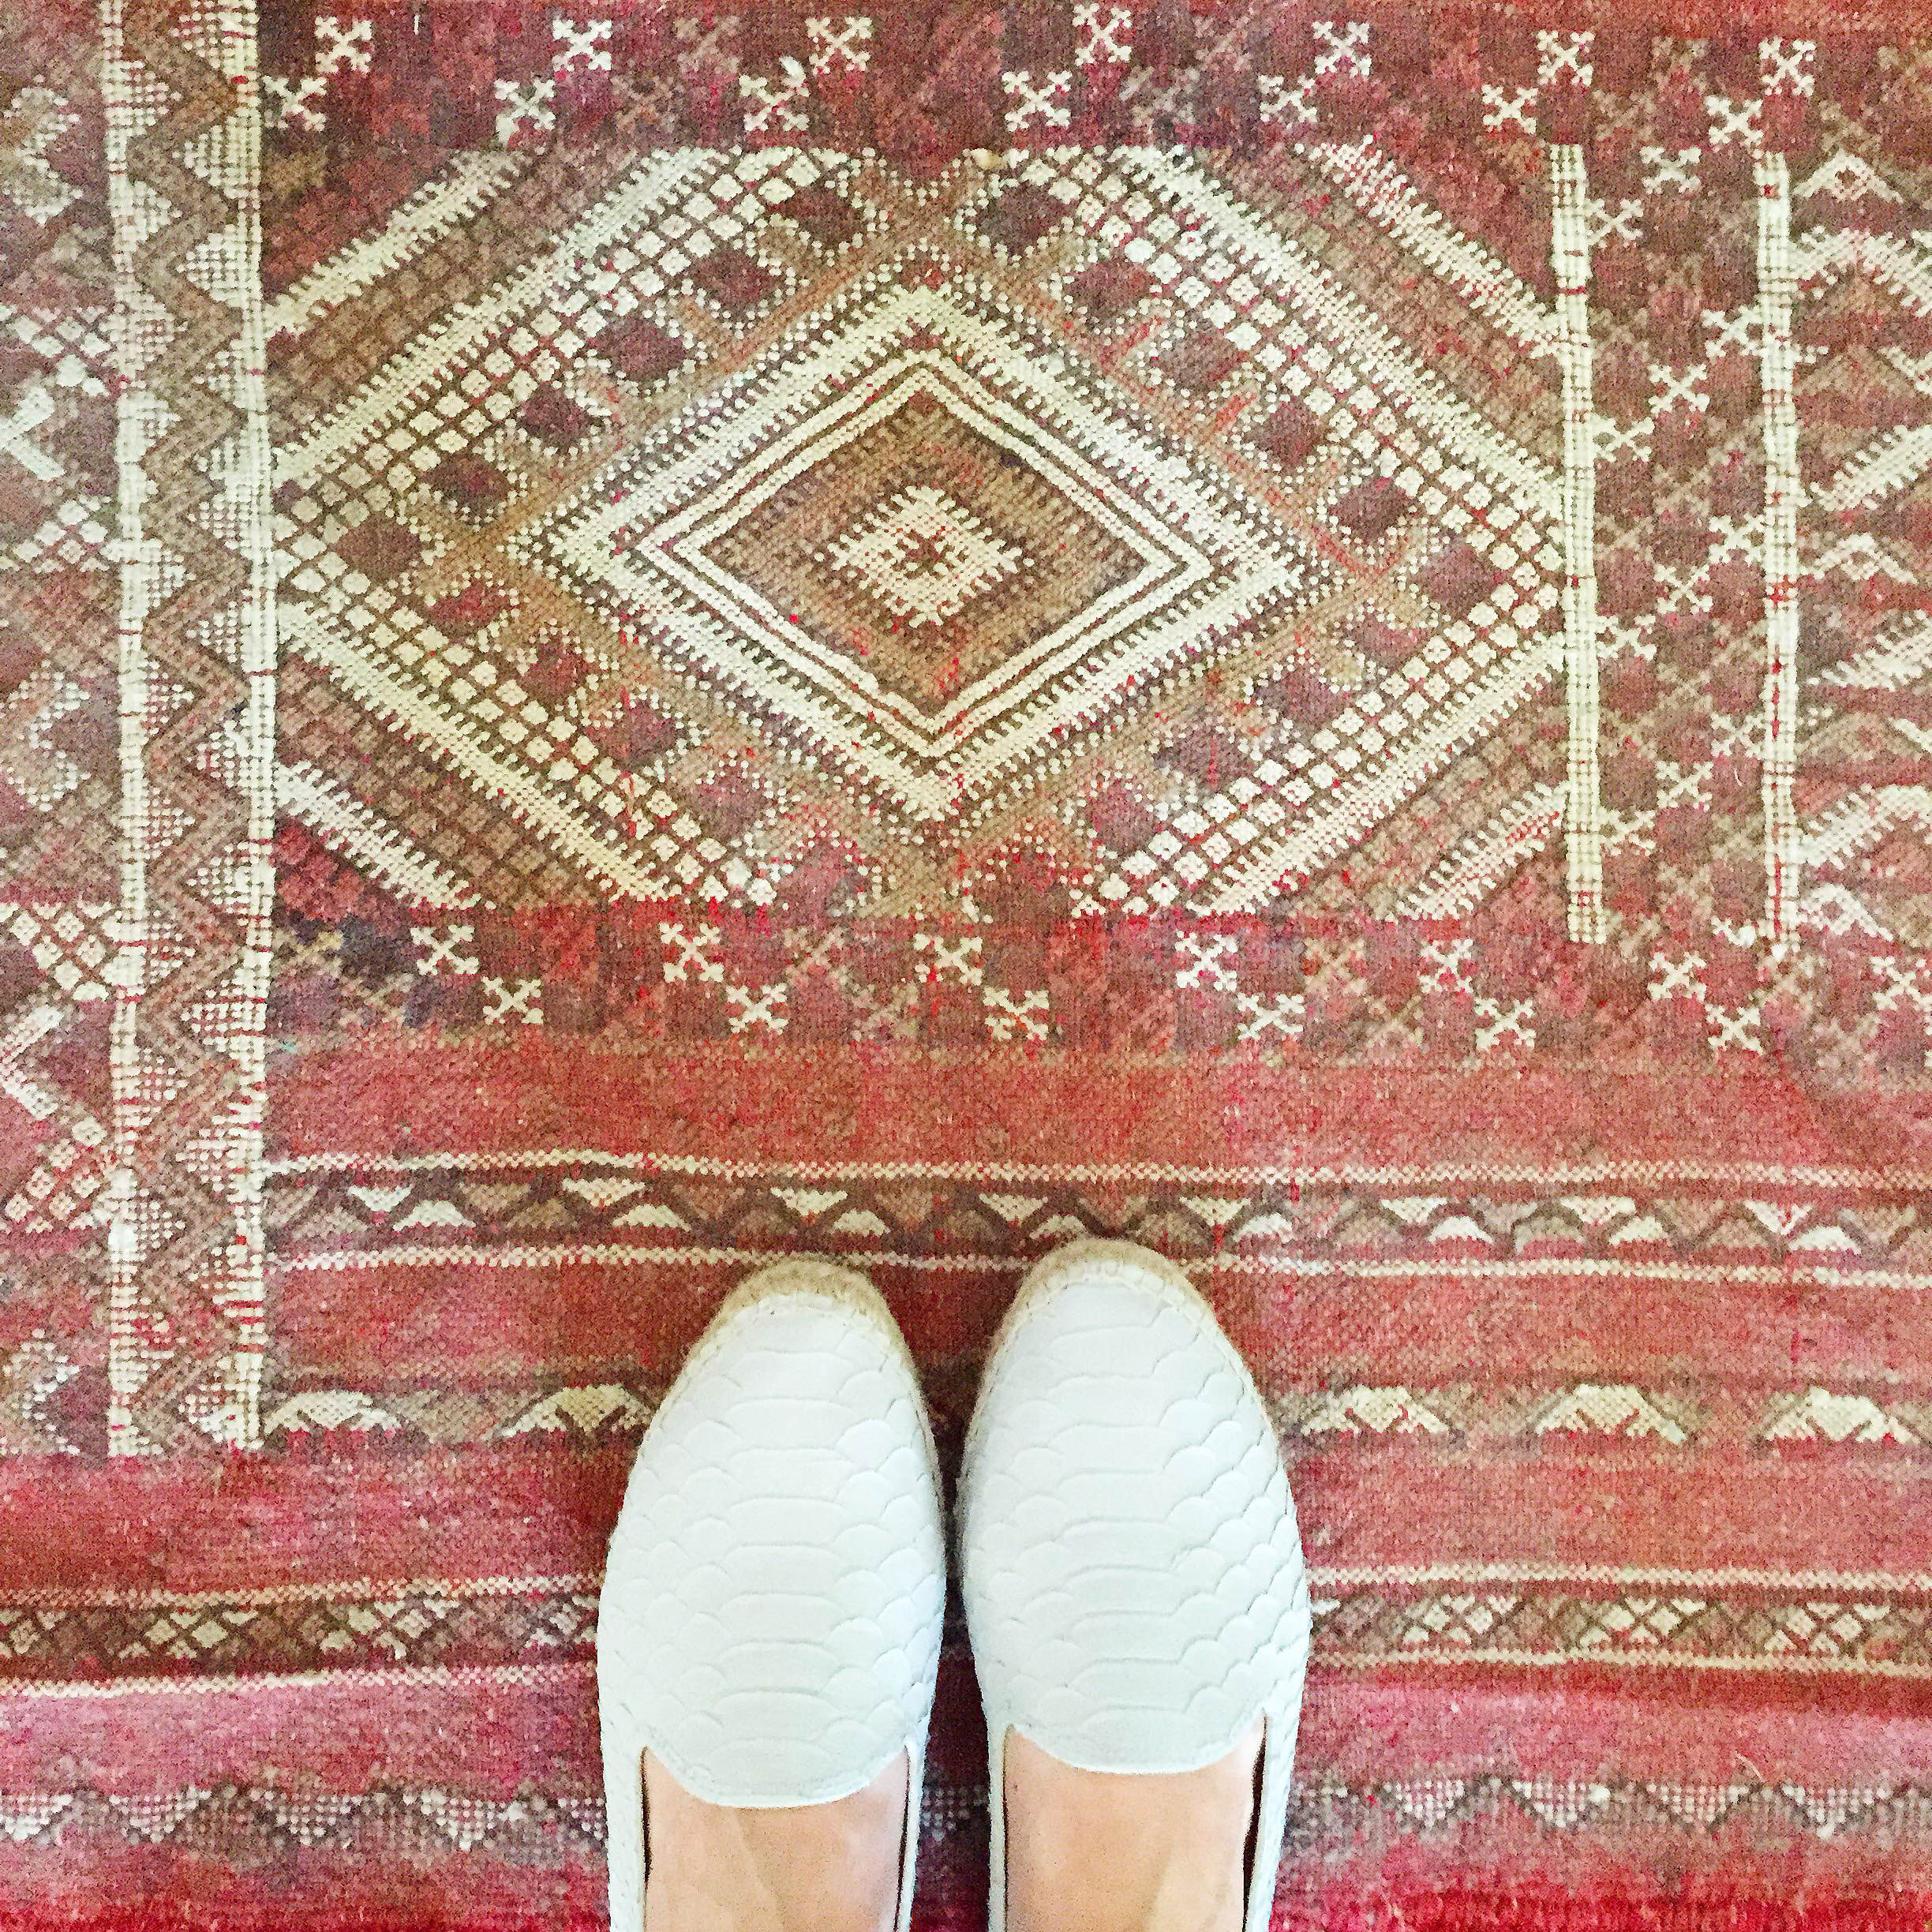 According to Hungarian tradition (my husband's roots), a bride and groom are to say their vows on a red cloth ( rushnyk ), which they then display in their home.We changed tradition slightly with this Moroccan rug from  Badia Design --it's a constant reminder of that most amazing day.